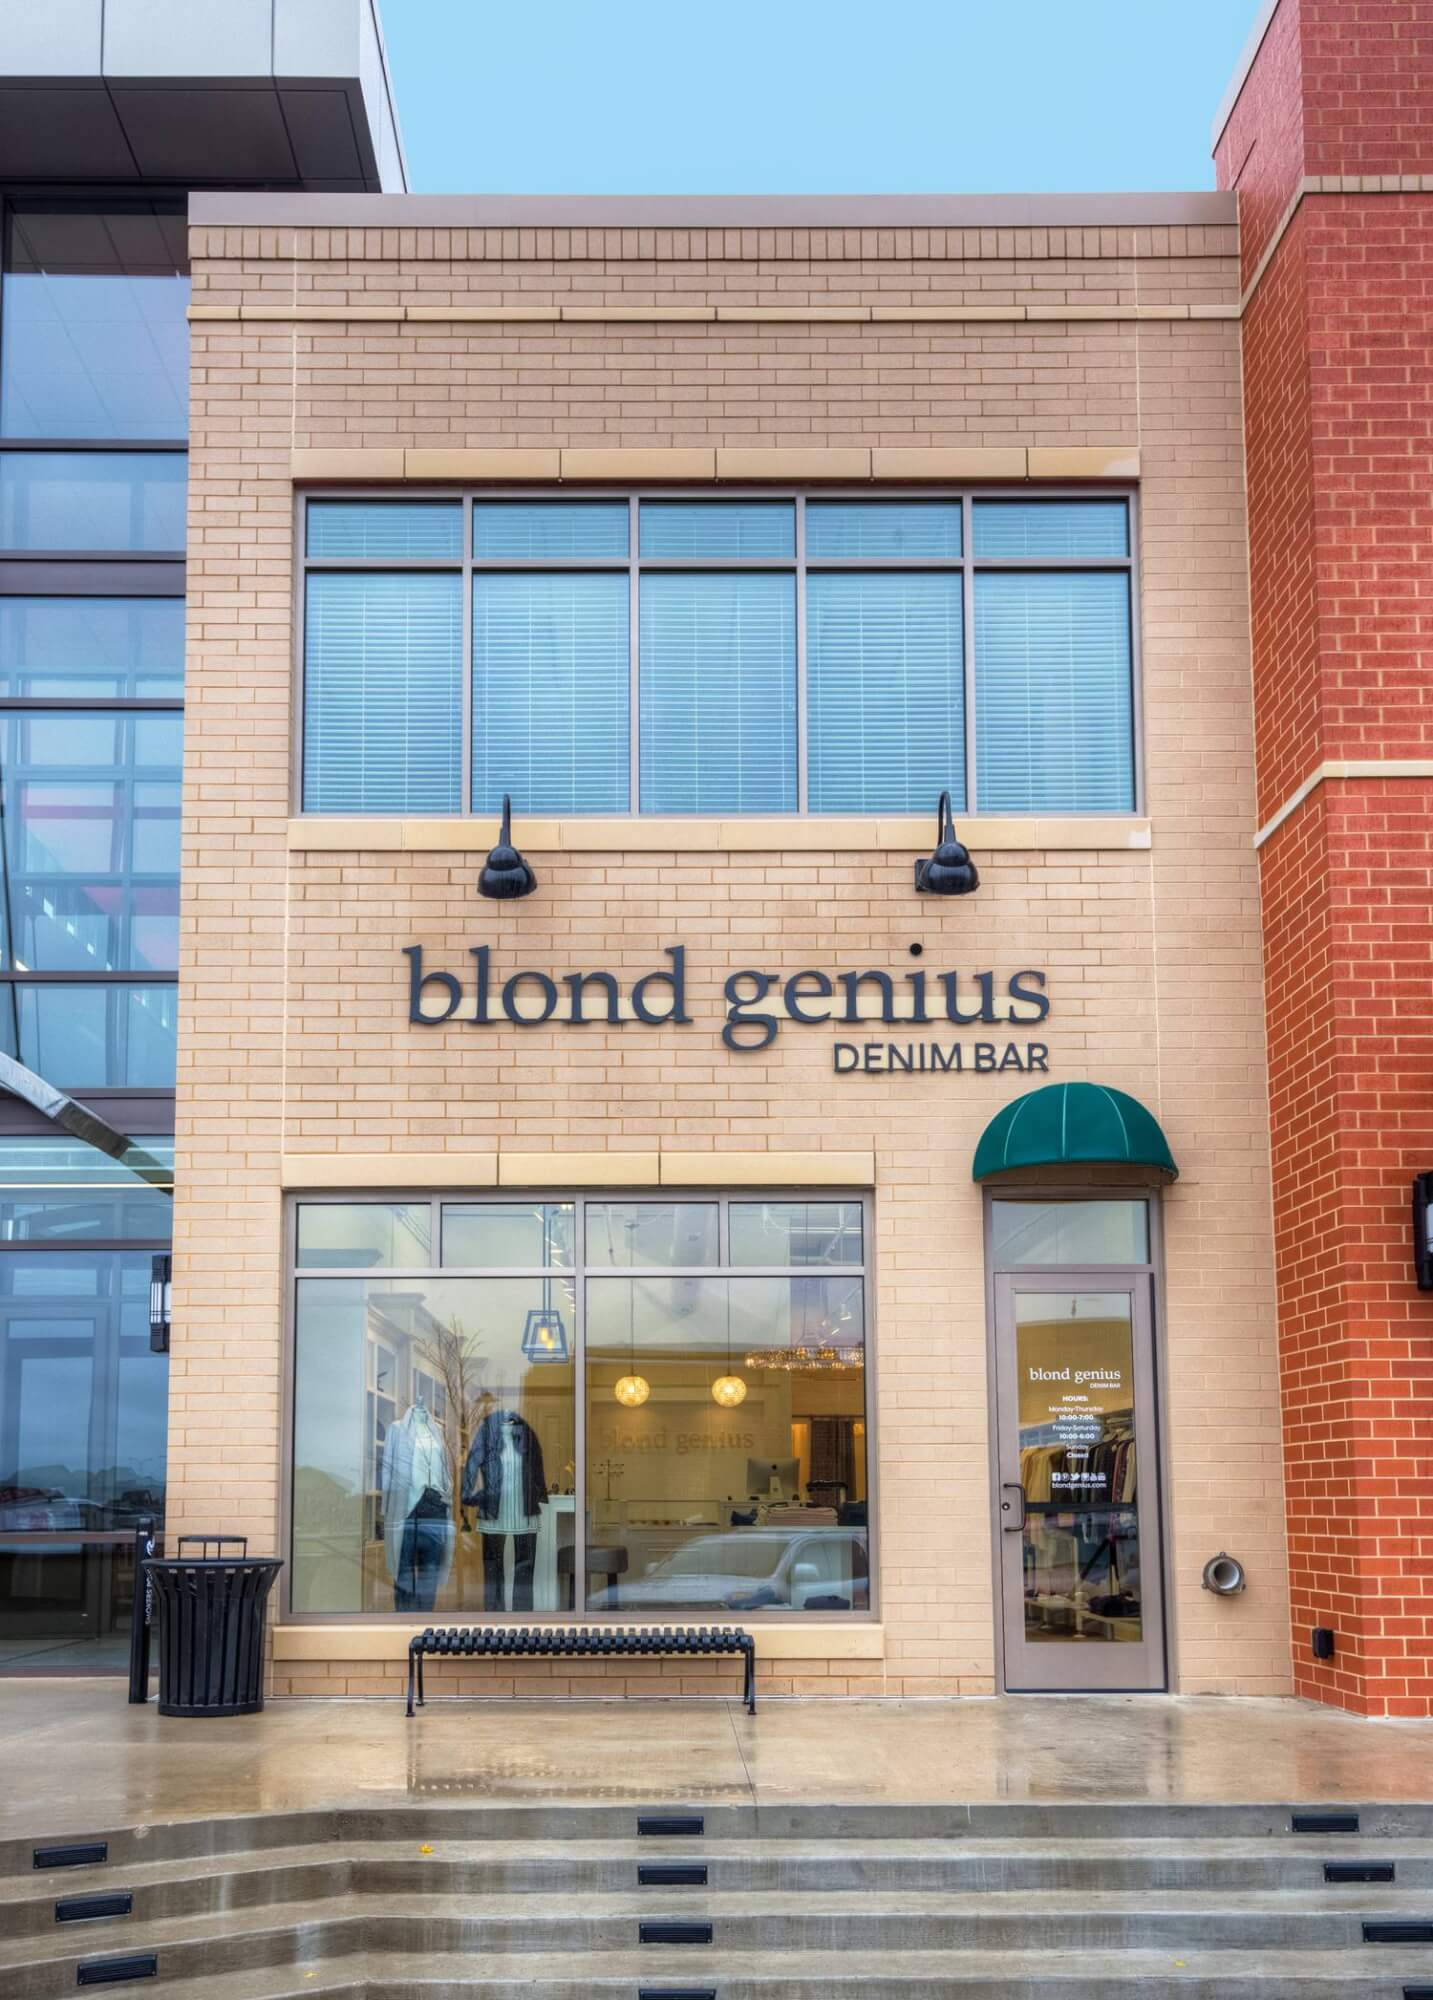 blond genius denim bar